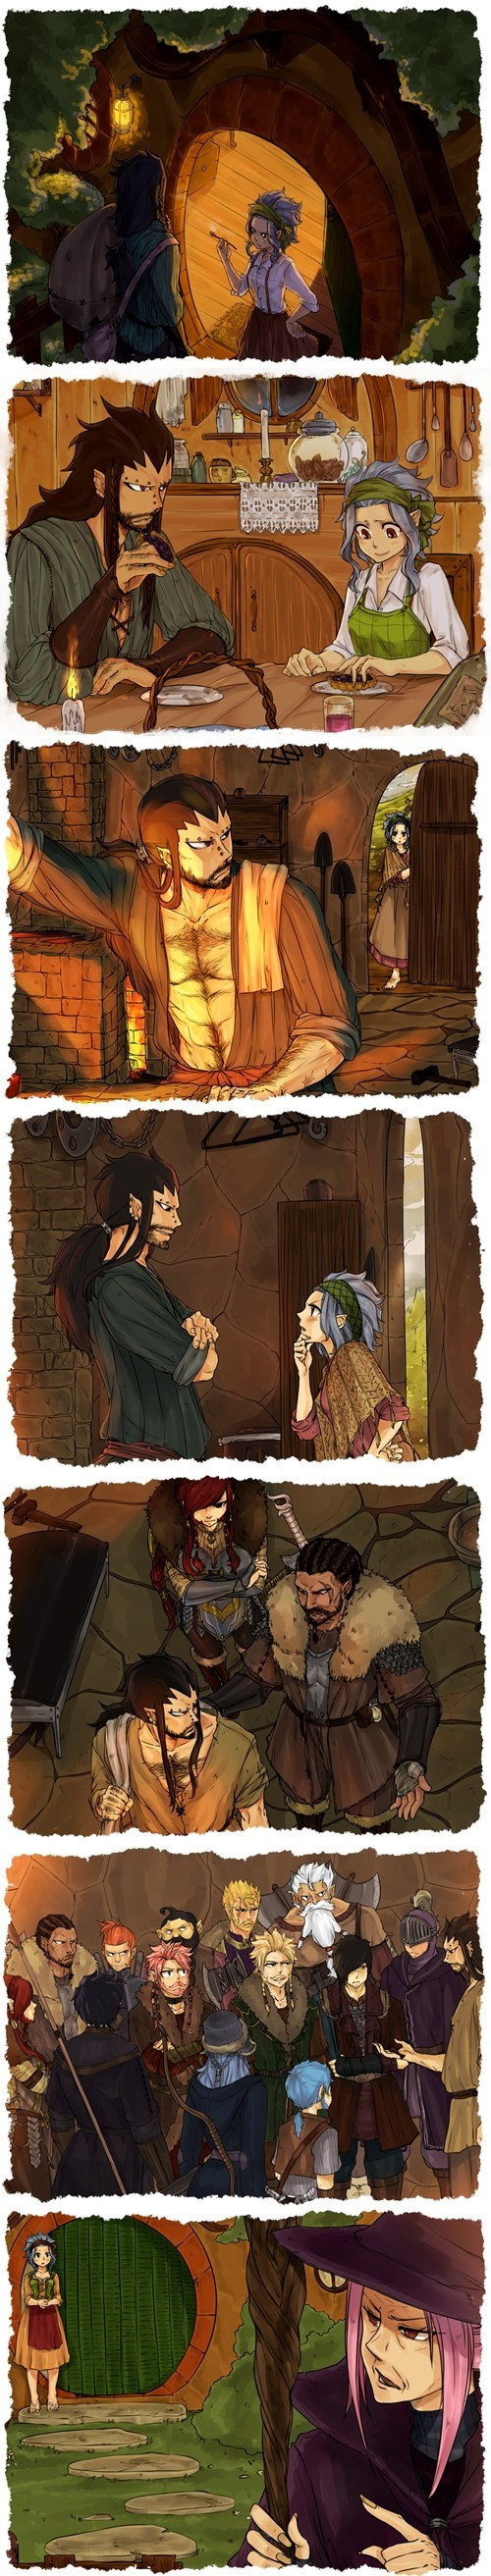 anime,crossover,fairy tail,Fan Art,The Hobbit